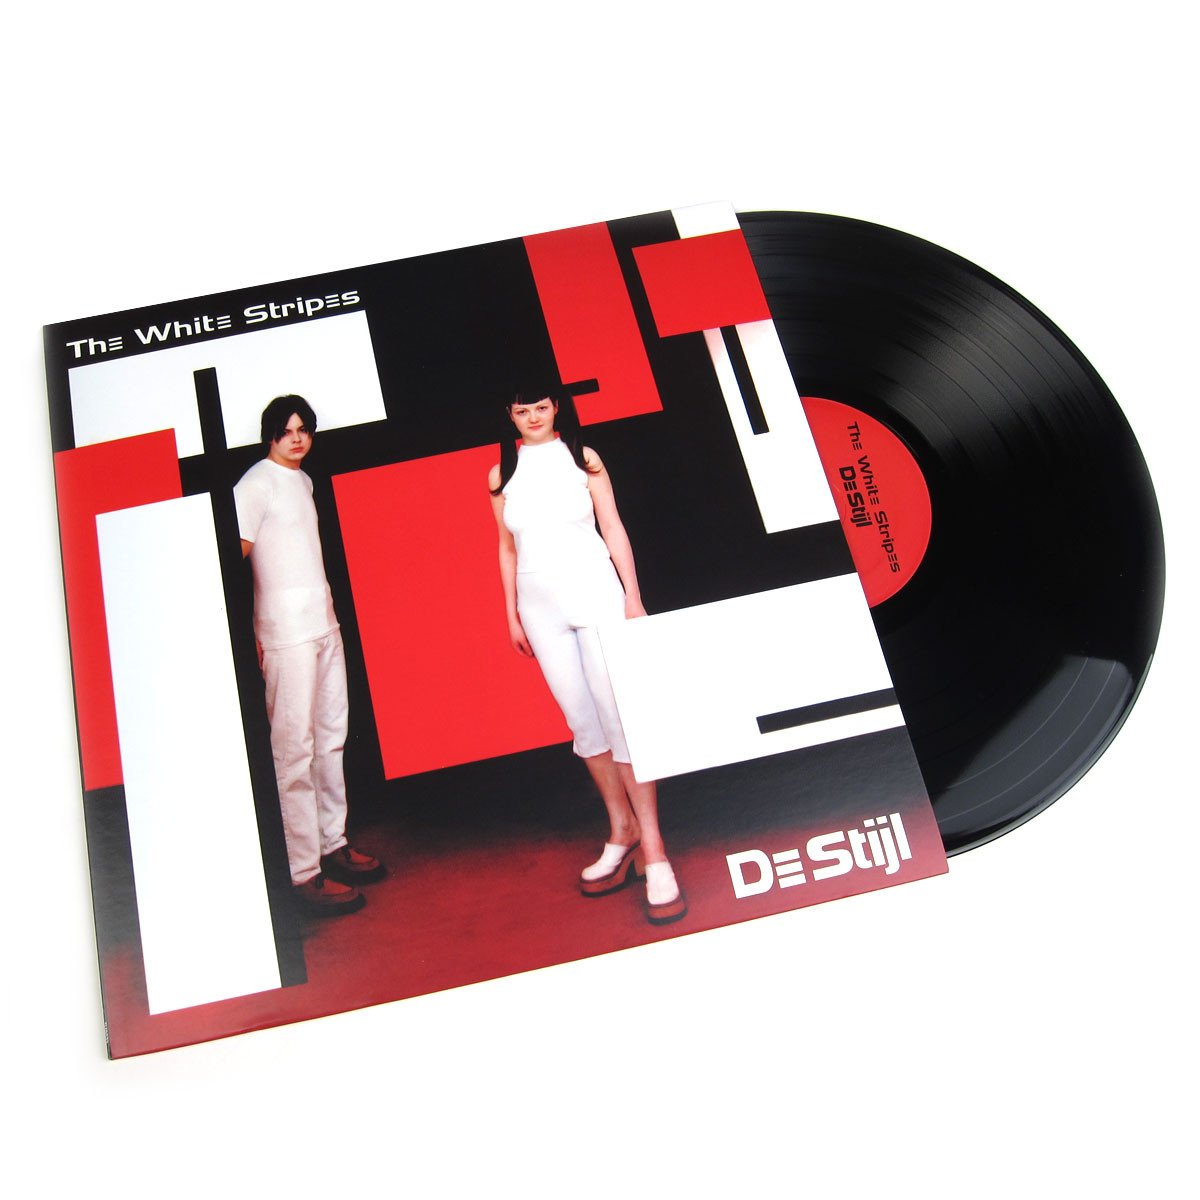 The White Stripes: De Stijl (180g) Vinyl LP